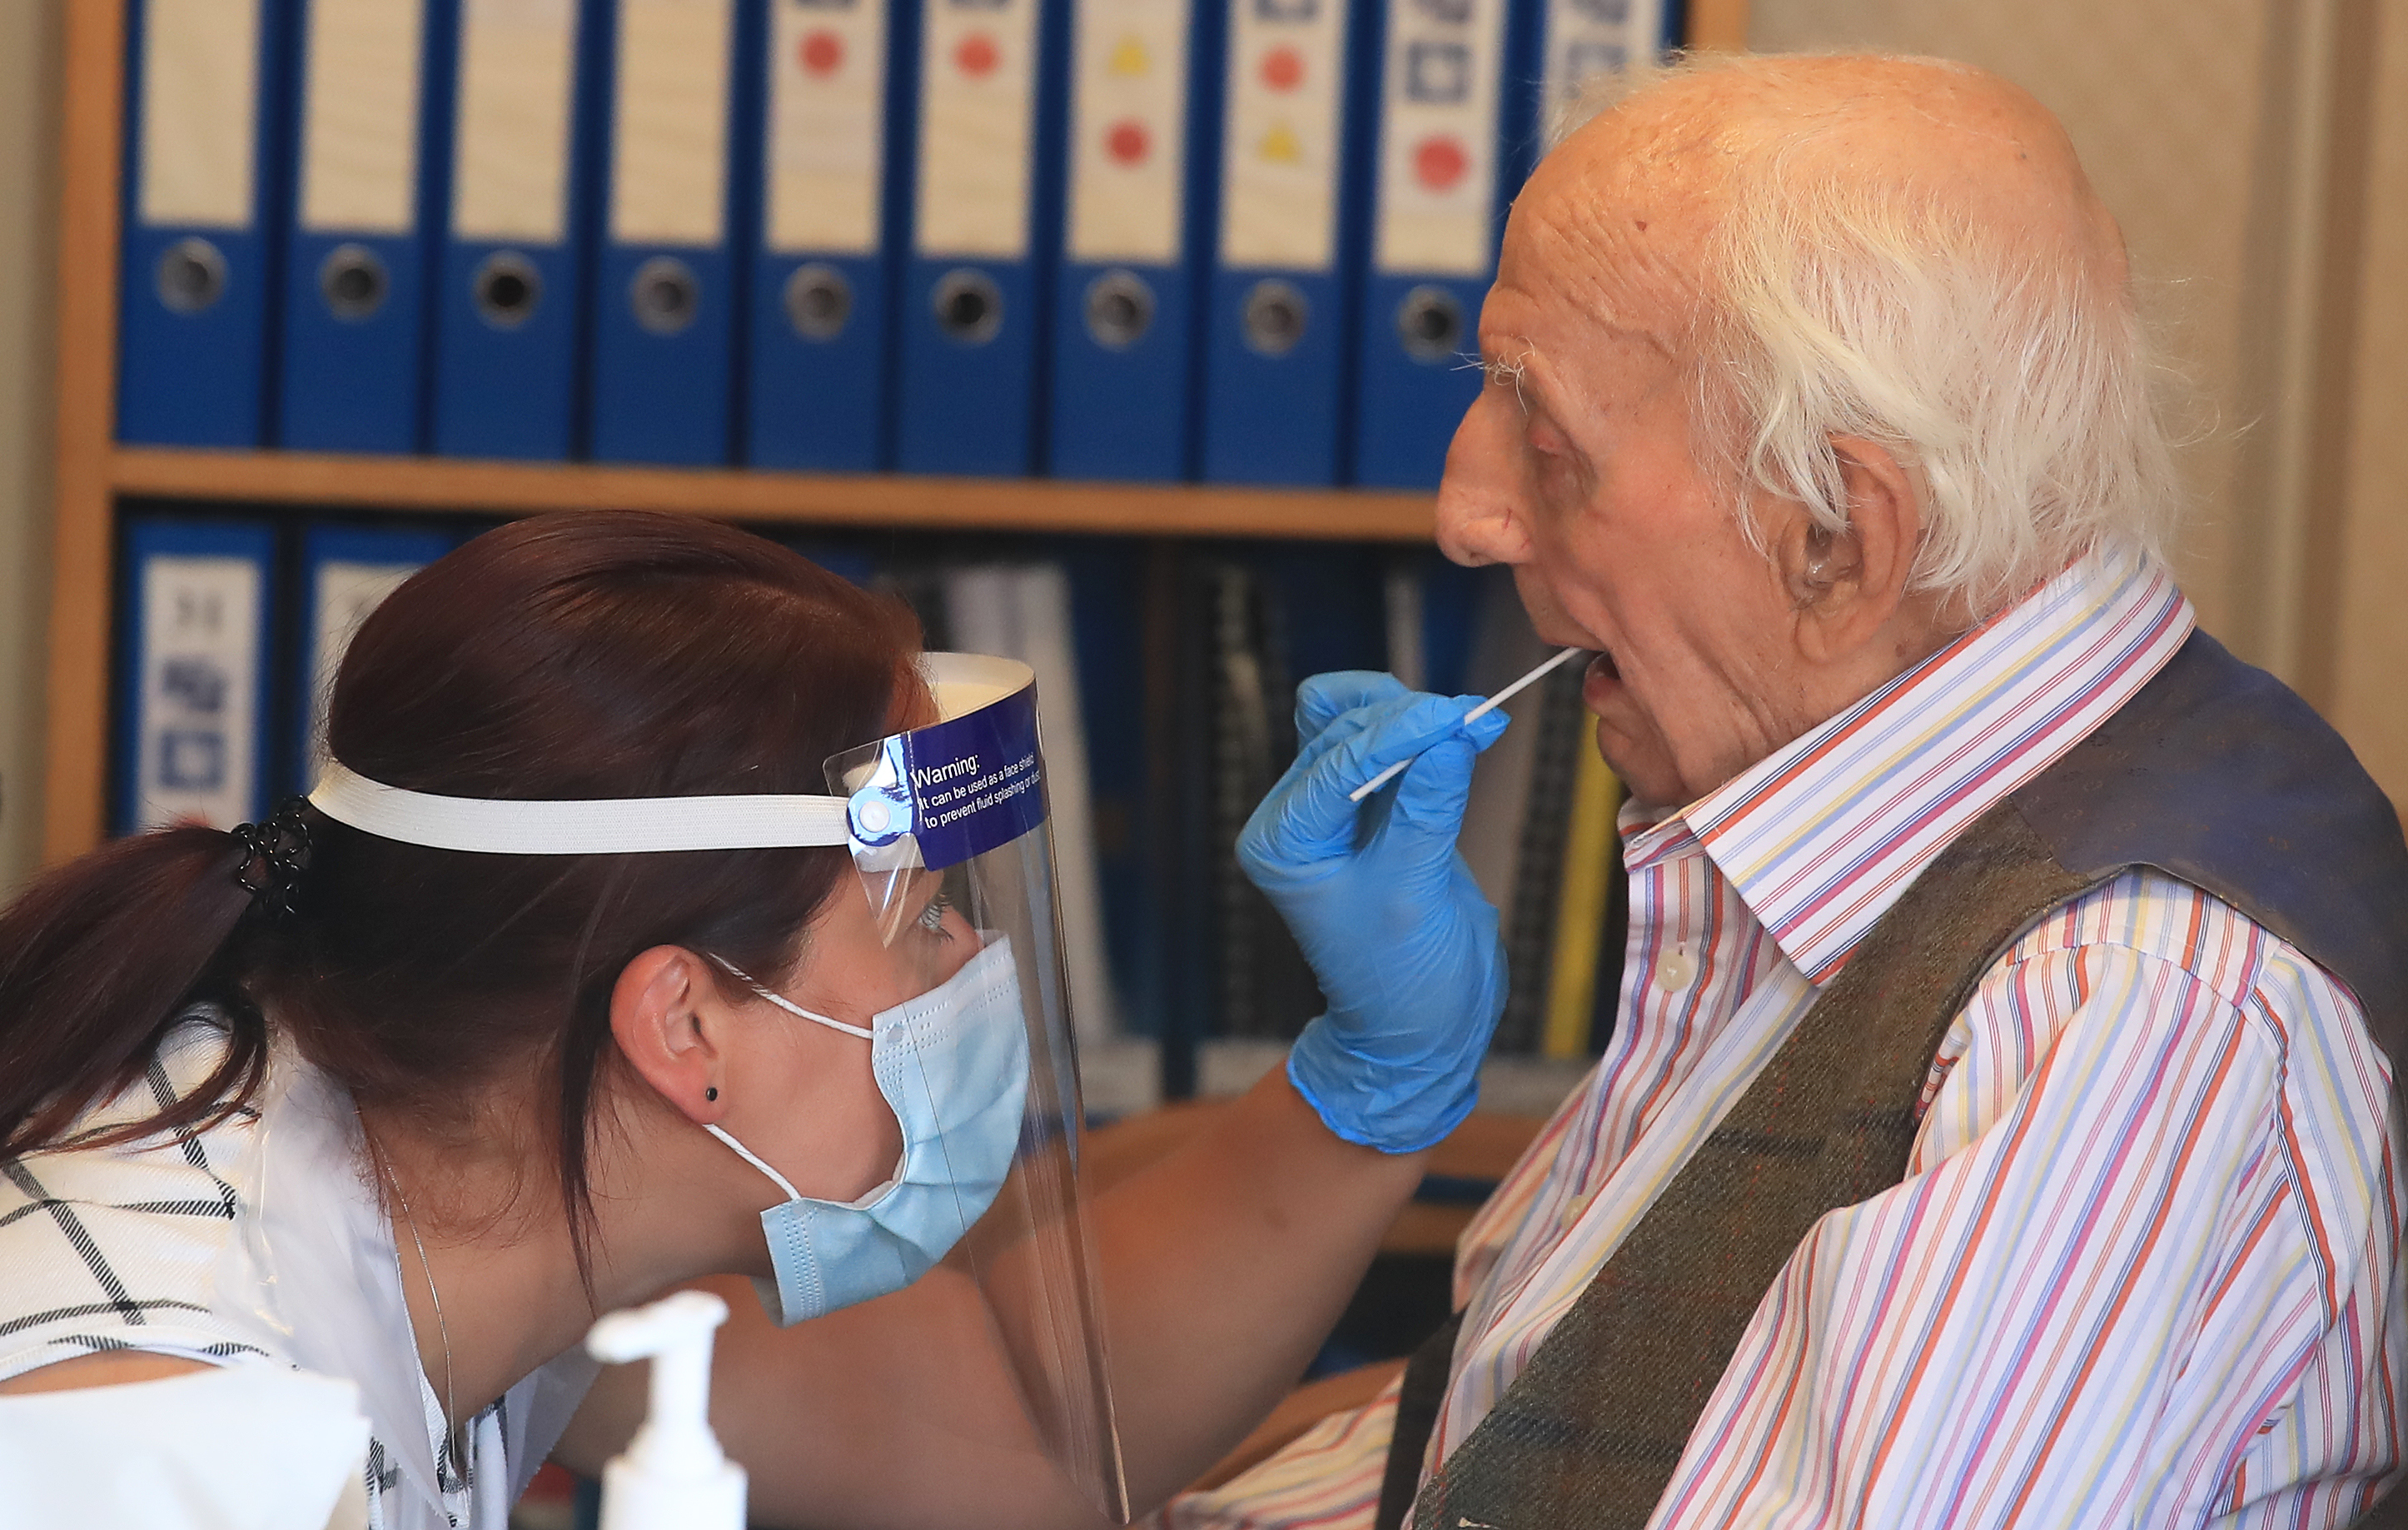 Assistant manager Claire Welford administers a coronavirus swab test on resident Harry Hall, 94, at the Eothen Homes care home in Whitley Bay, Tyneside, where all staff and residents are being tested for coronavirus. (Photo by Owen Humphreys/PA Images via Getty Images)